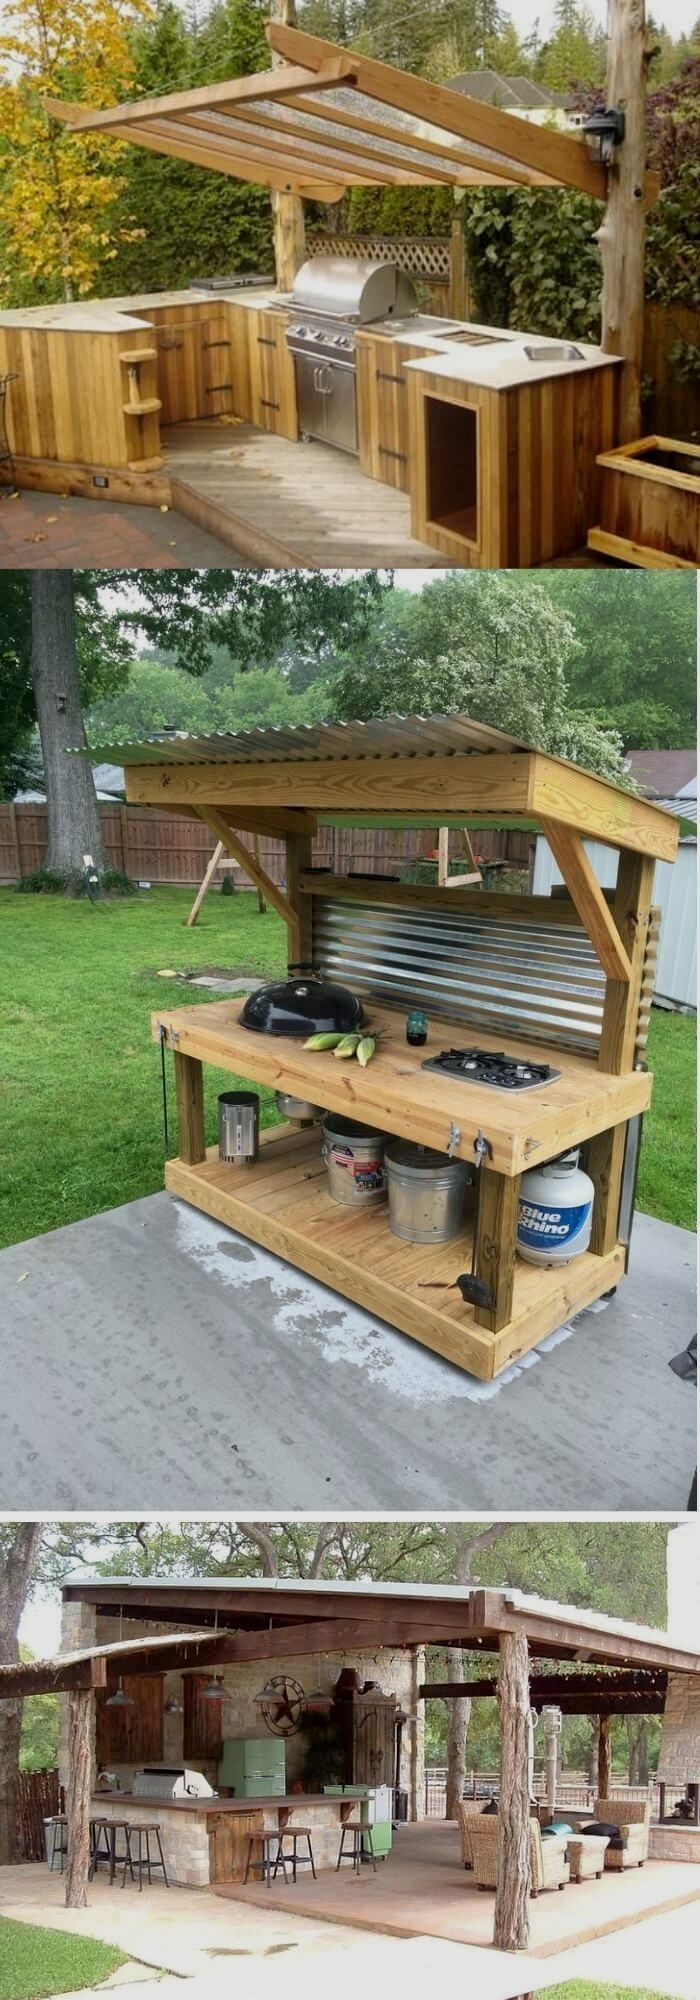 built in deck benches with storage in 2020 diy outdoor kitchen diy outdoor rustic outdoor on outdoor kitchen on deck id=58687